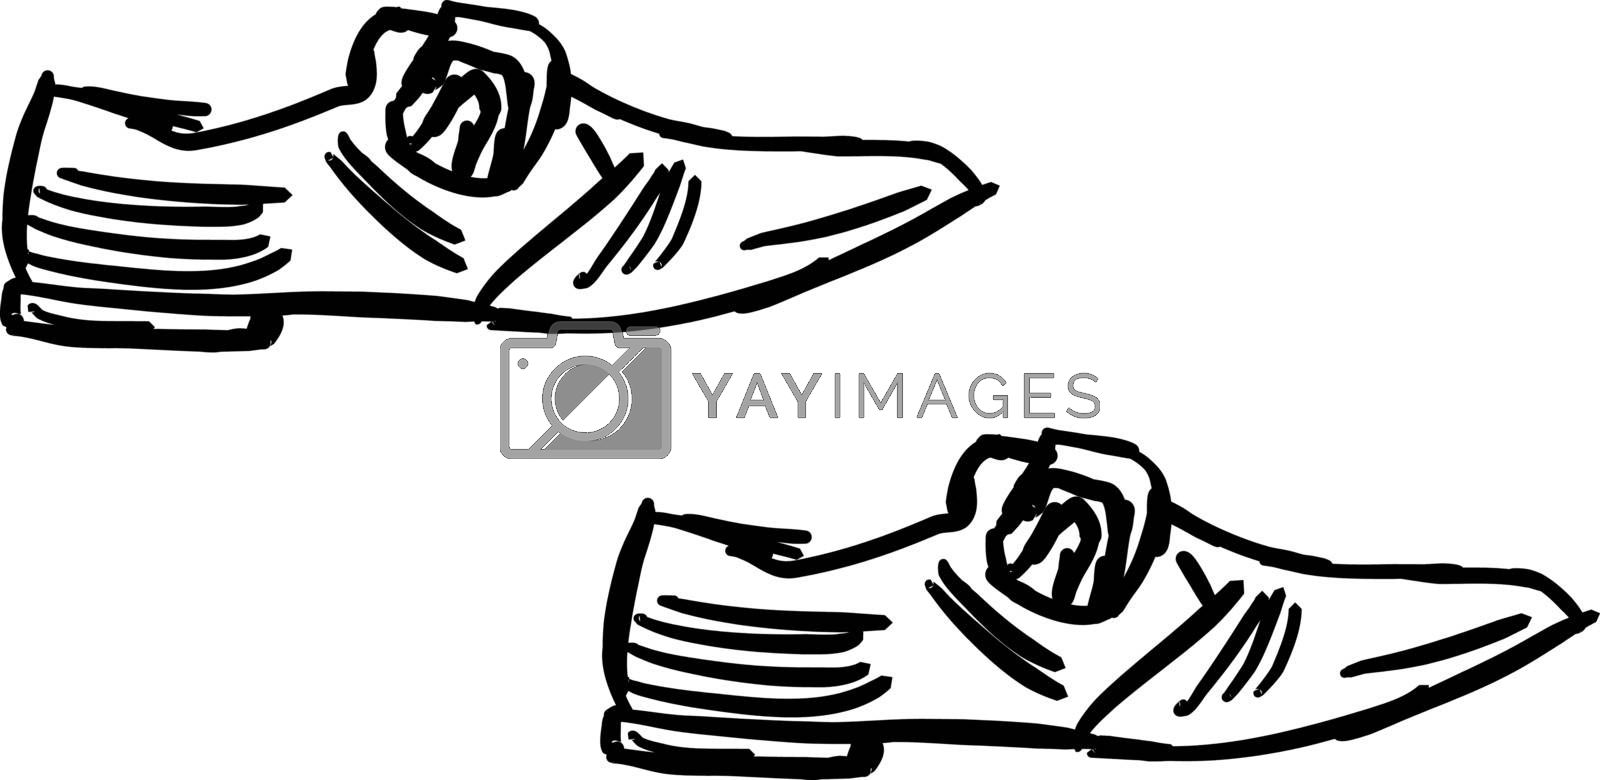 Mans shoes drawing, illustration, vector on white background.